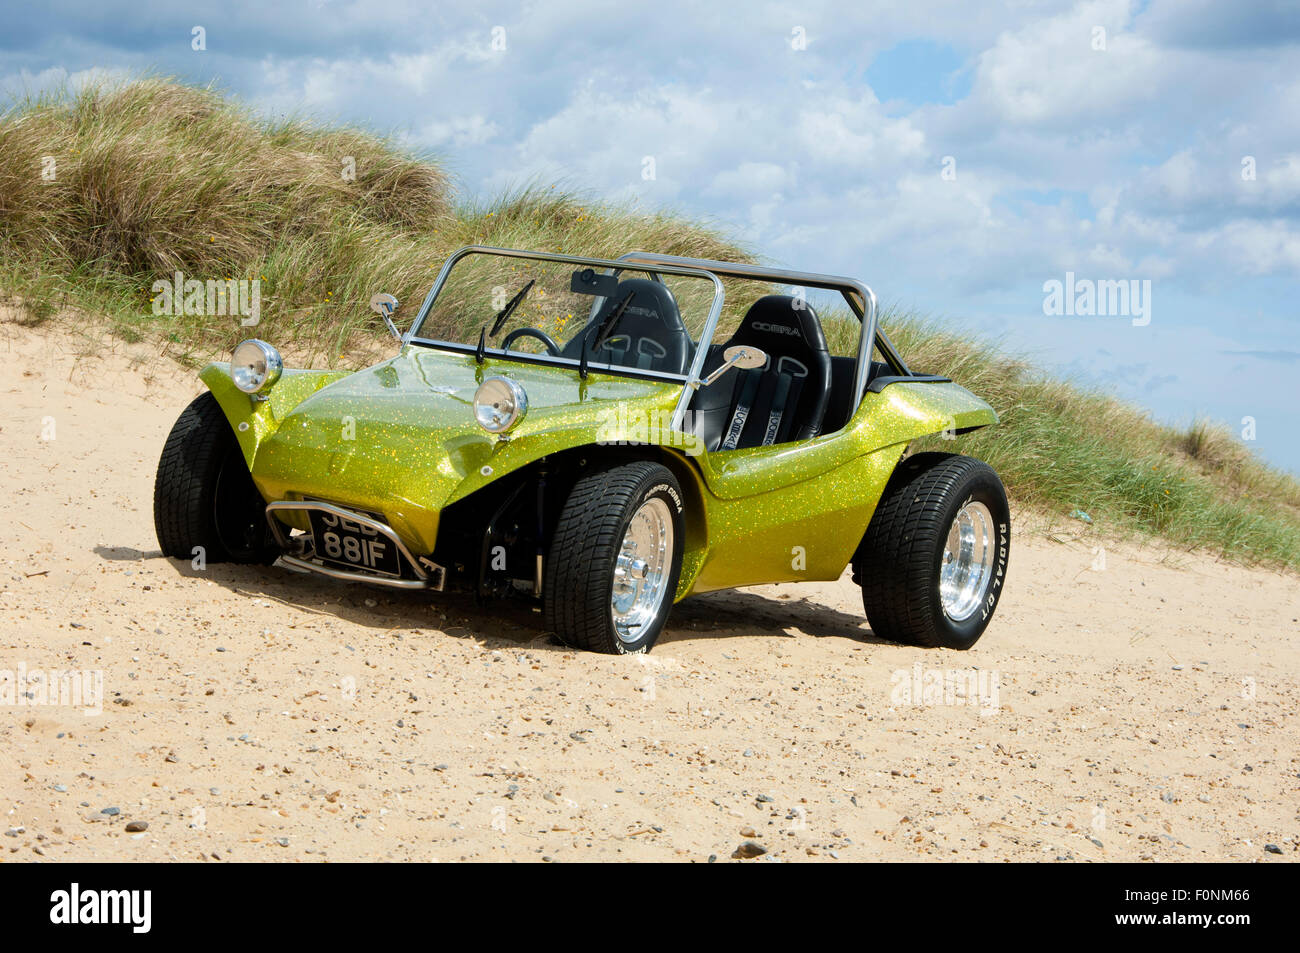 Vw Beetle Dune Buggy Conversion Www Pixshark Com